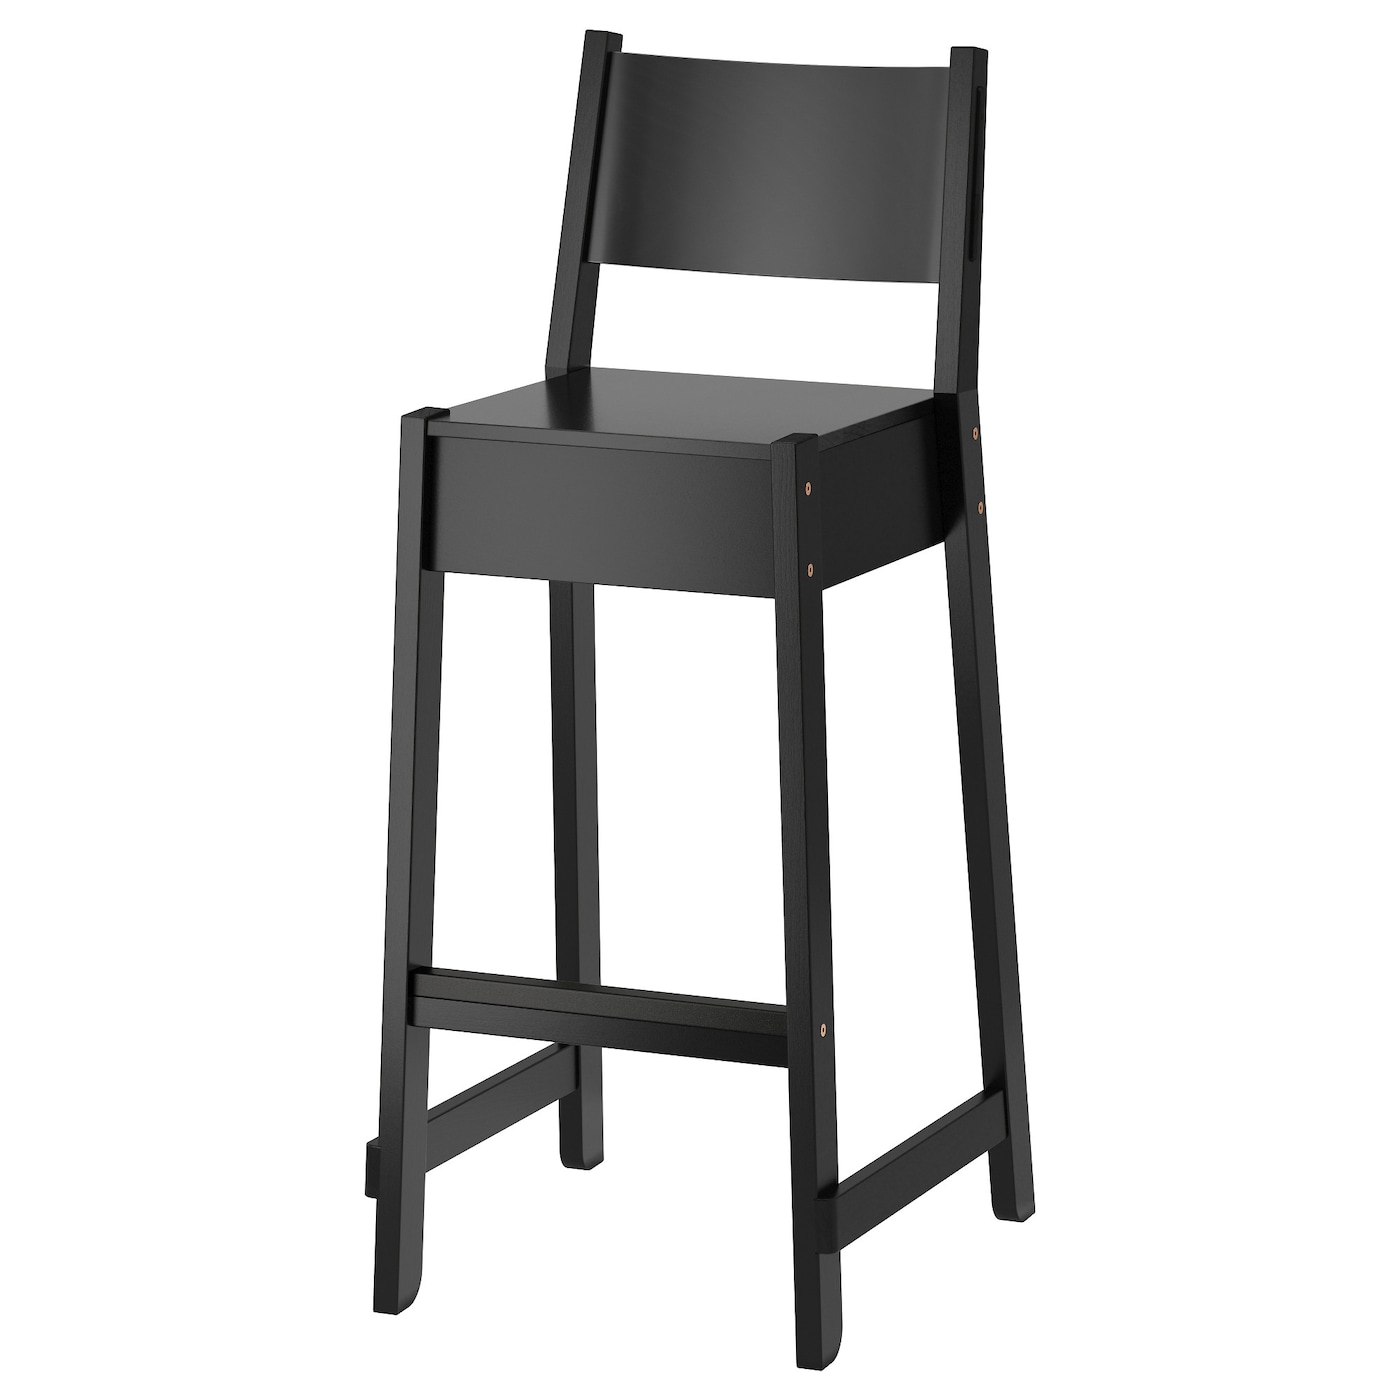 chaises hautes de bar design pas cher ikea. Black Bedroom Furniture Sets. Home Design Ideas